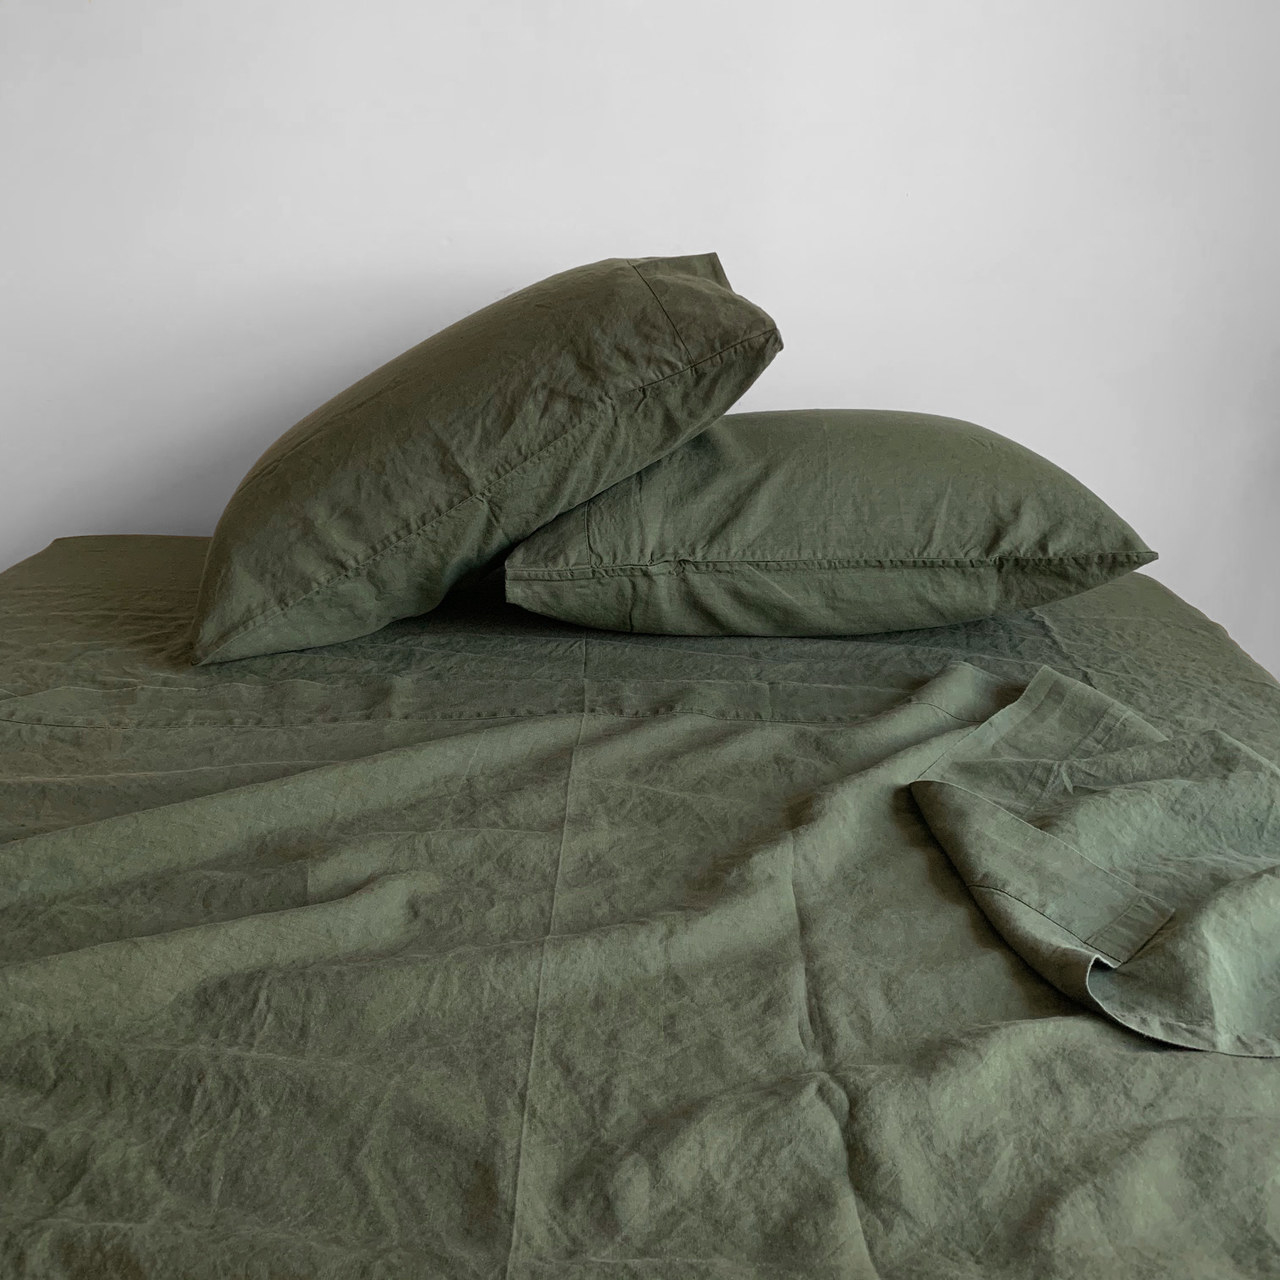 olive sheets on a bed